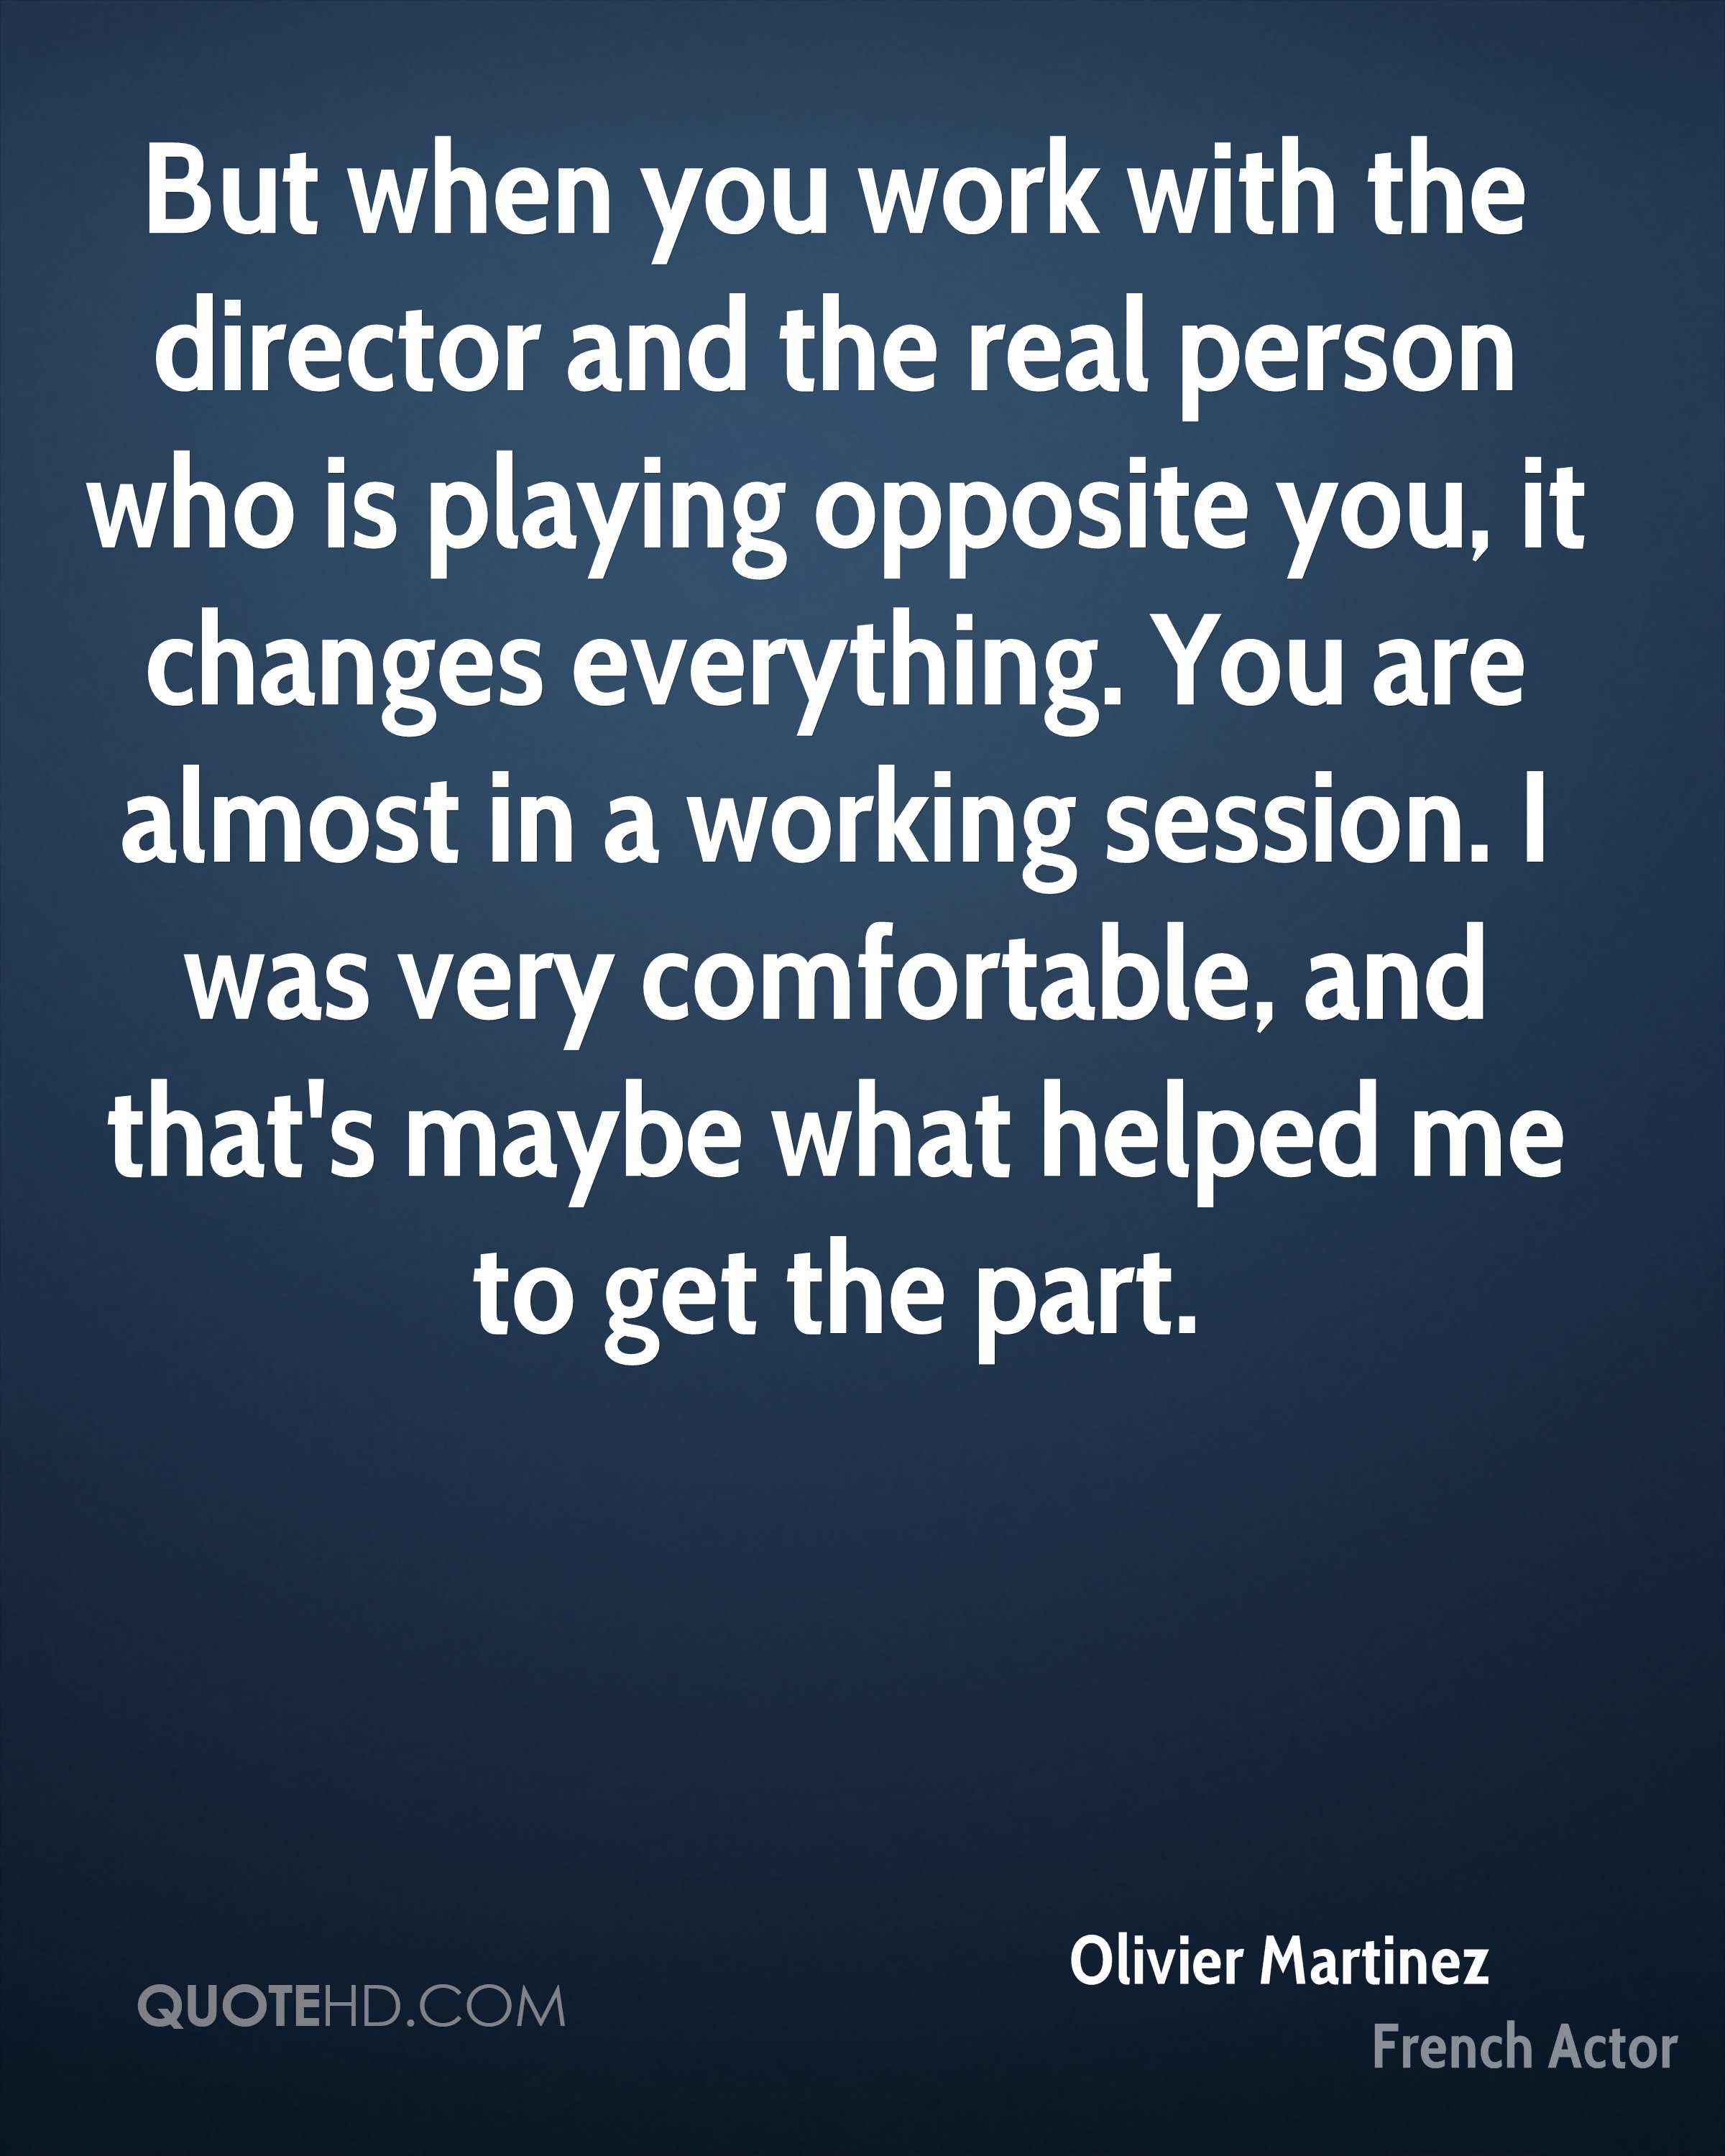 But when you work with the director and the real person who is playing opposite you, it changes everything. You are almost in a working session. I was very comfortable, and that's maybe what helped me to get the part.